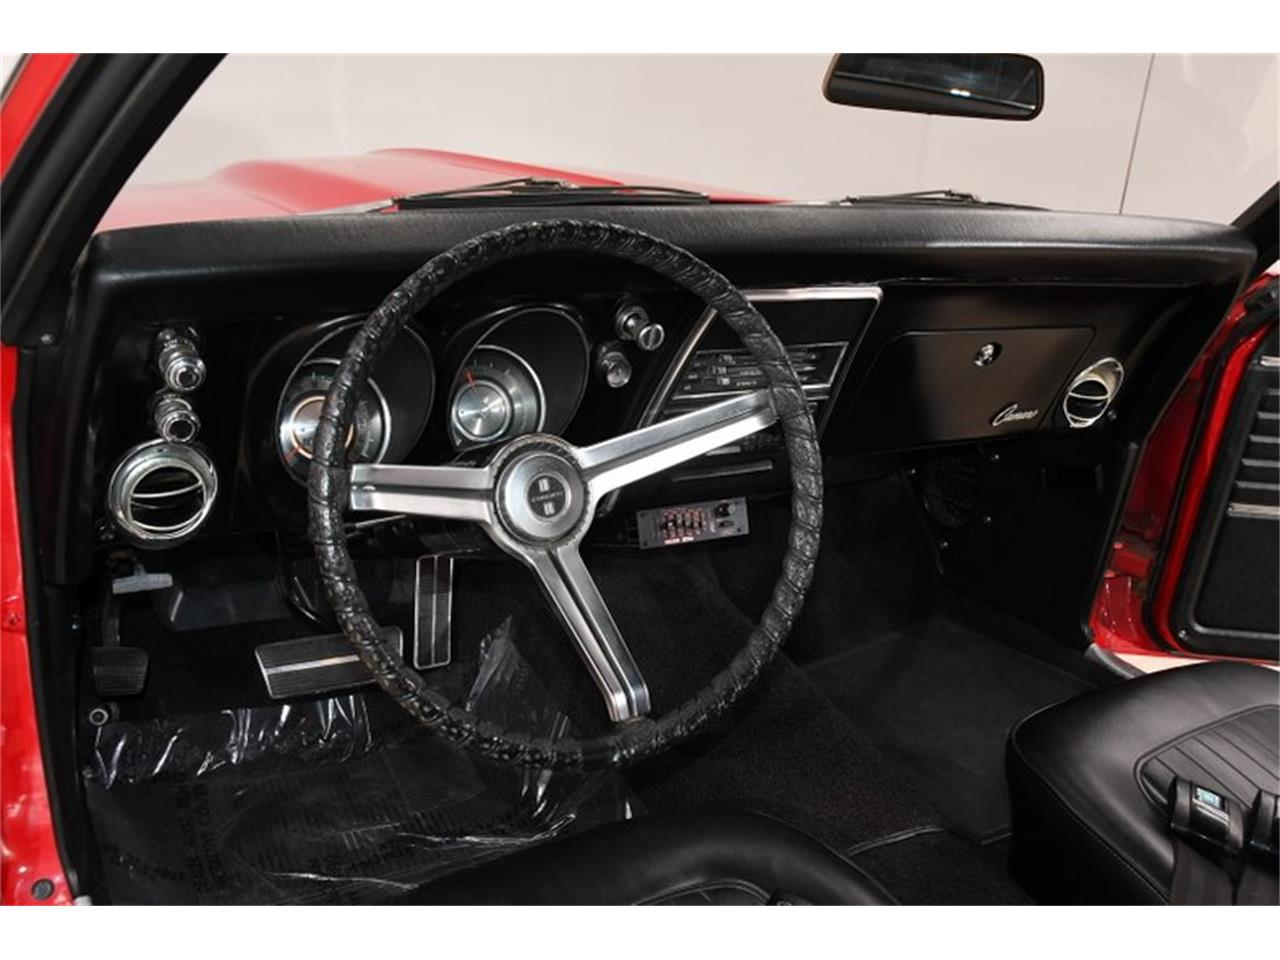 Large Picture of Classic '68 Chevrolet Camaro located in Illinois - $31,998.00 - Q2WA